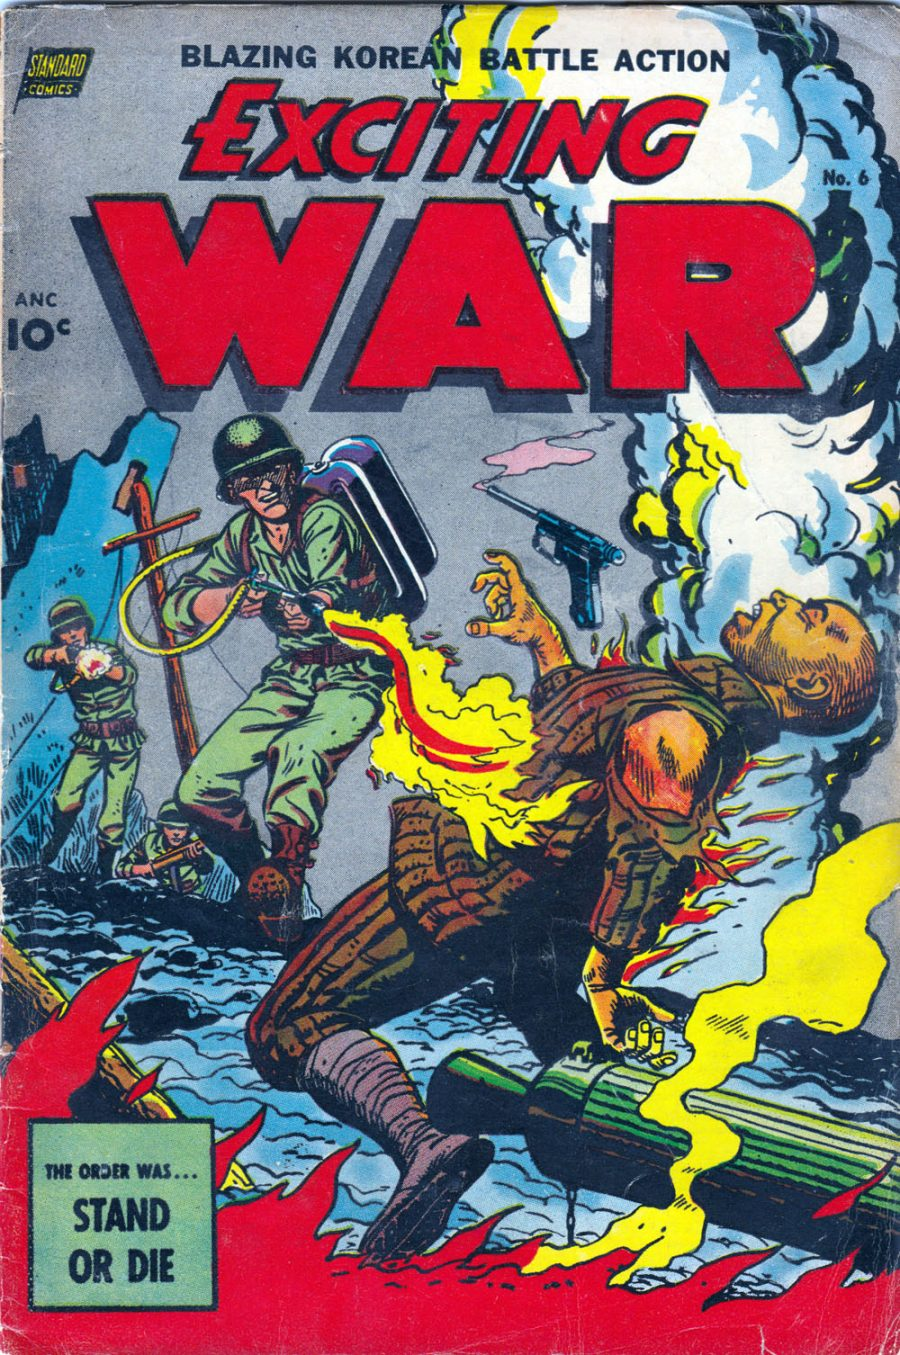 Download 15,000+ Free Golden Age Comics from the Digital Comic Museum Artes & contextos battle comic e1512063894365